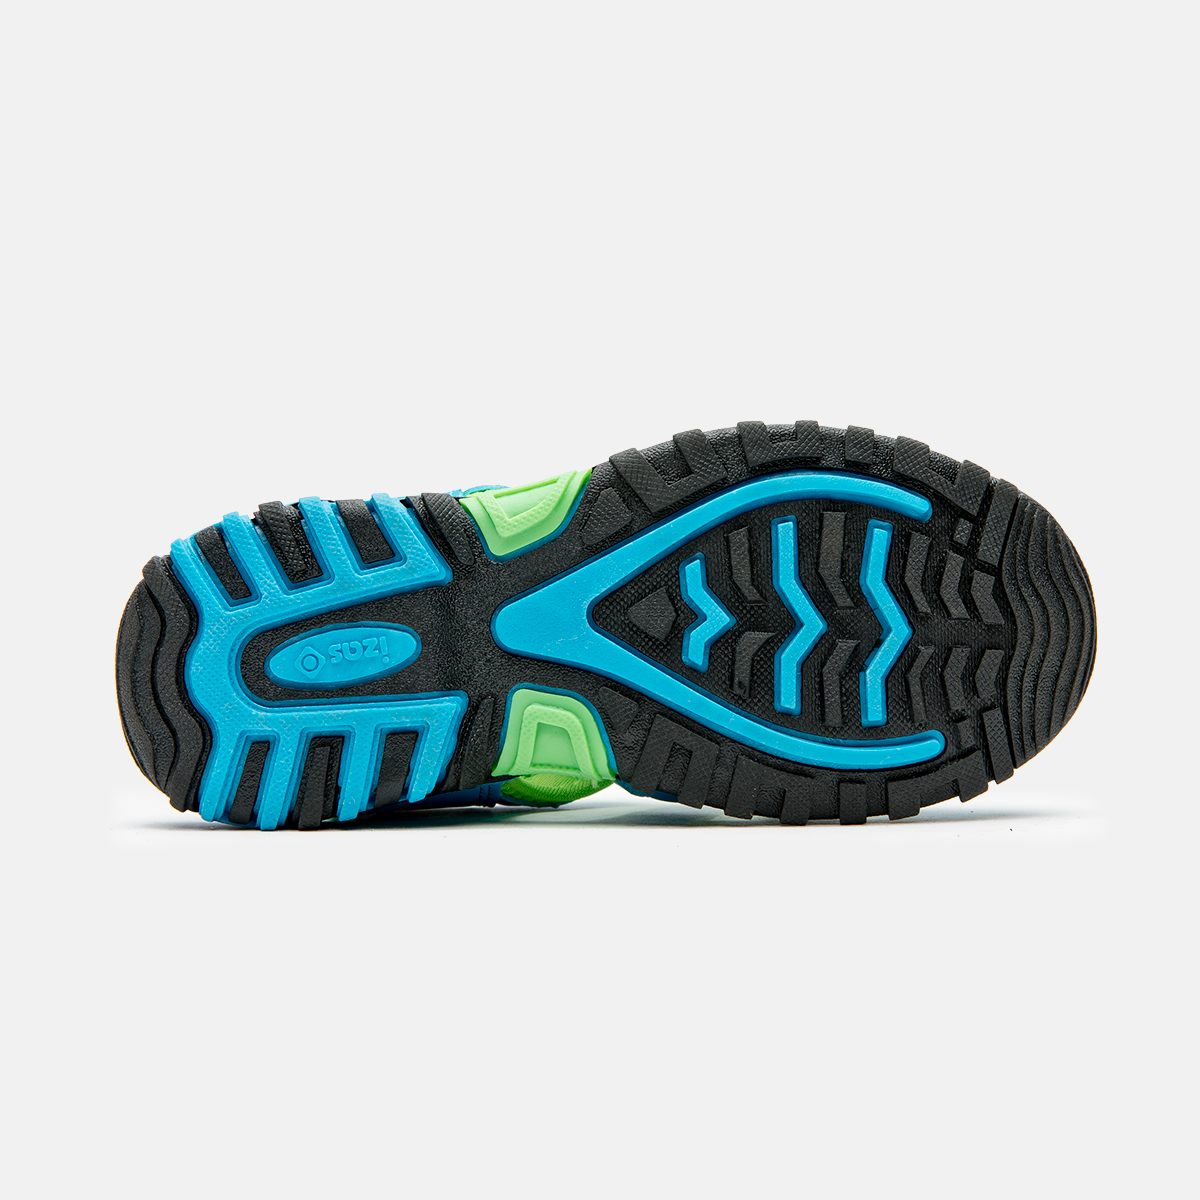 UNISEX'S FROSTY SANDALS TURQUOISE